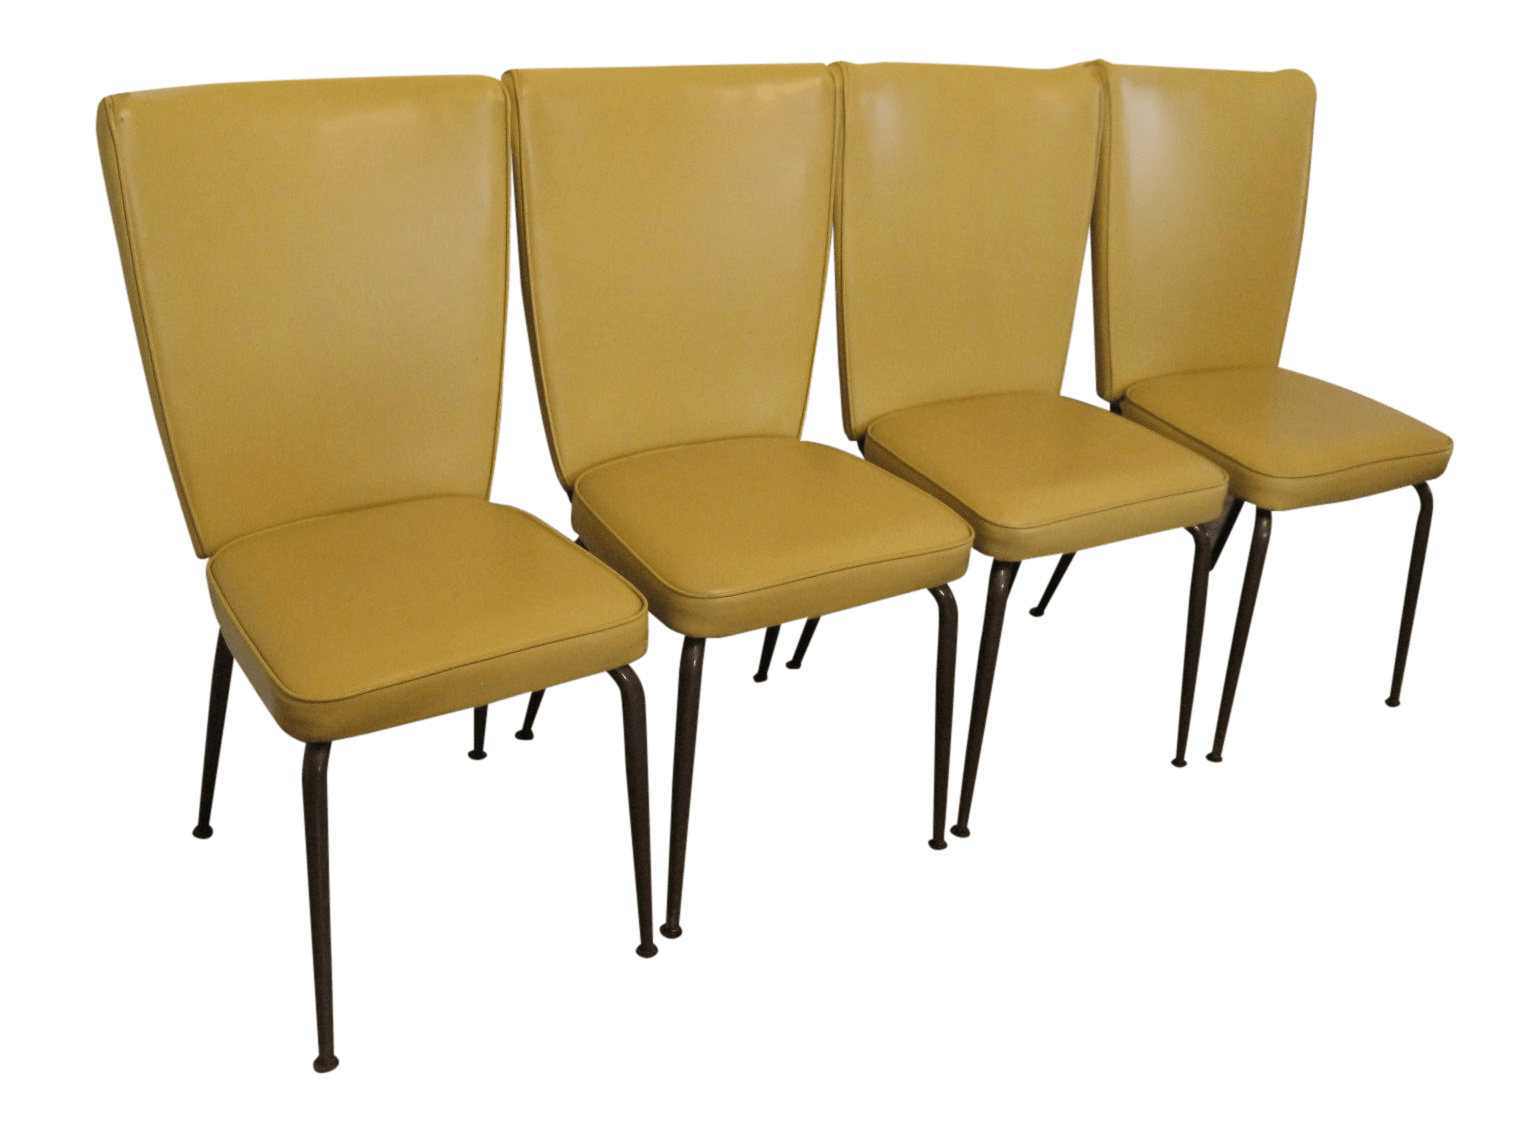 mid century modern kitchen chairs cabinet door replacement virtue bros yellow set of 4 chairish for sale